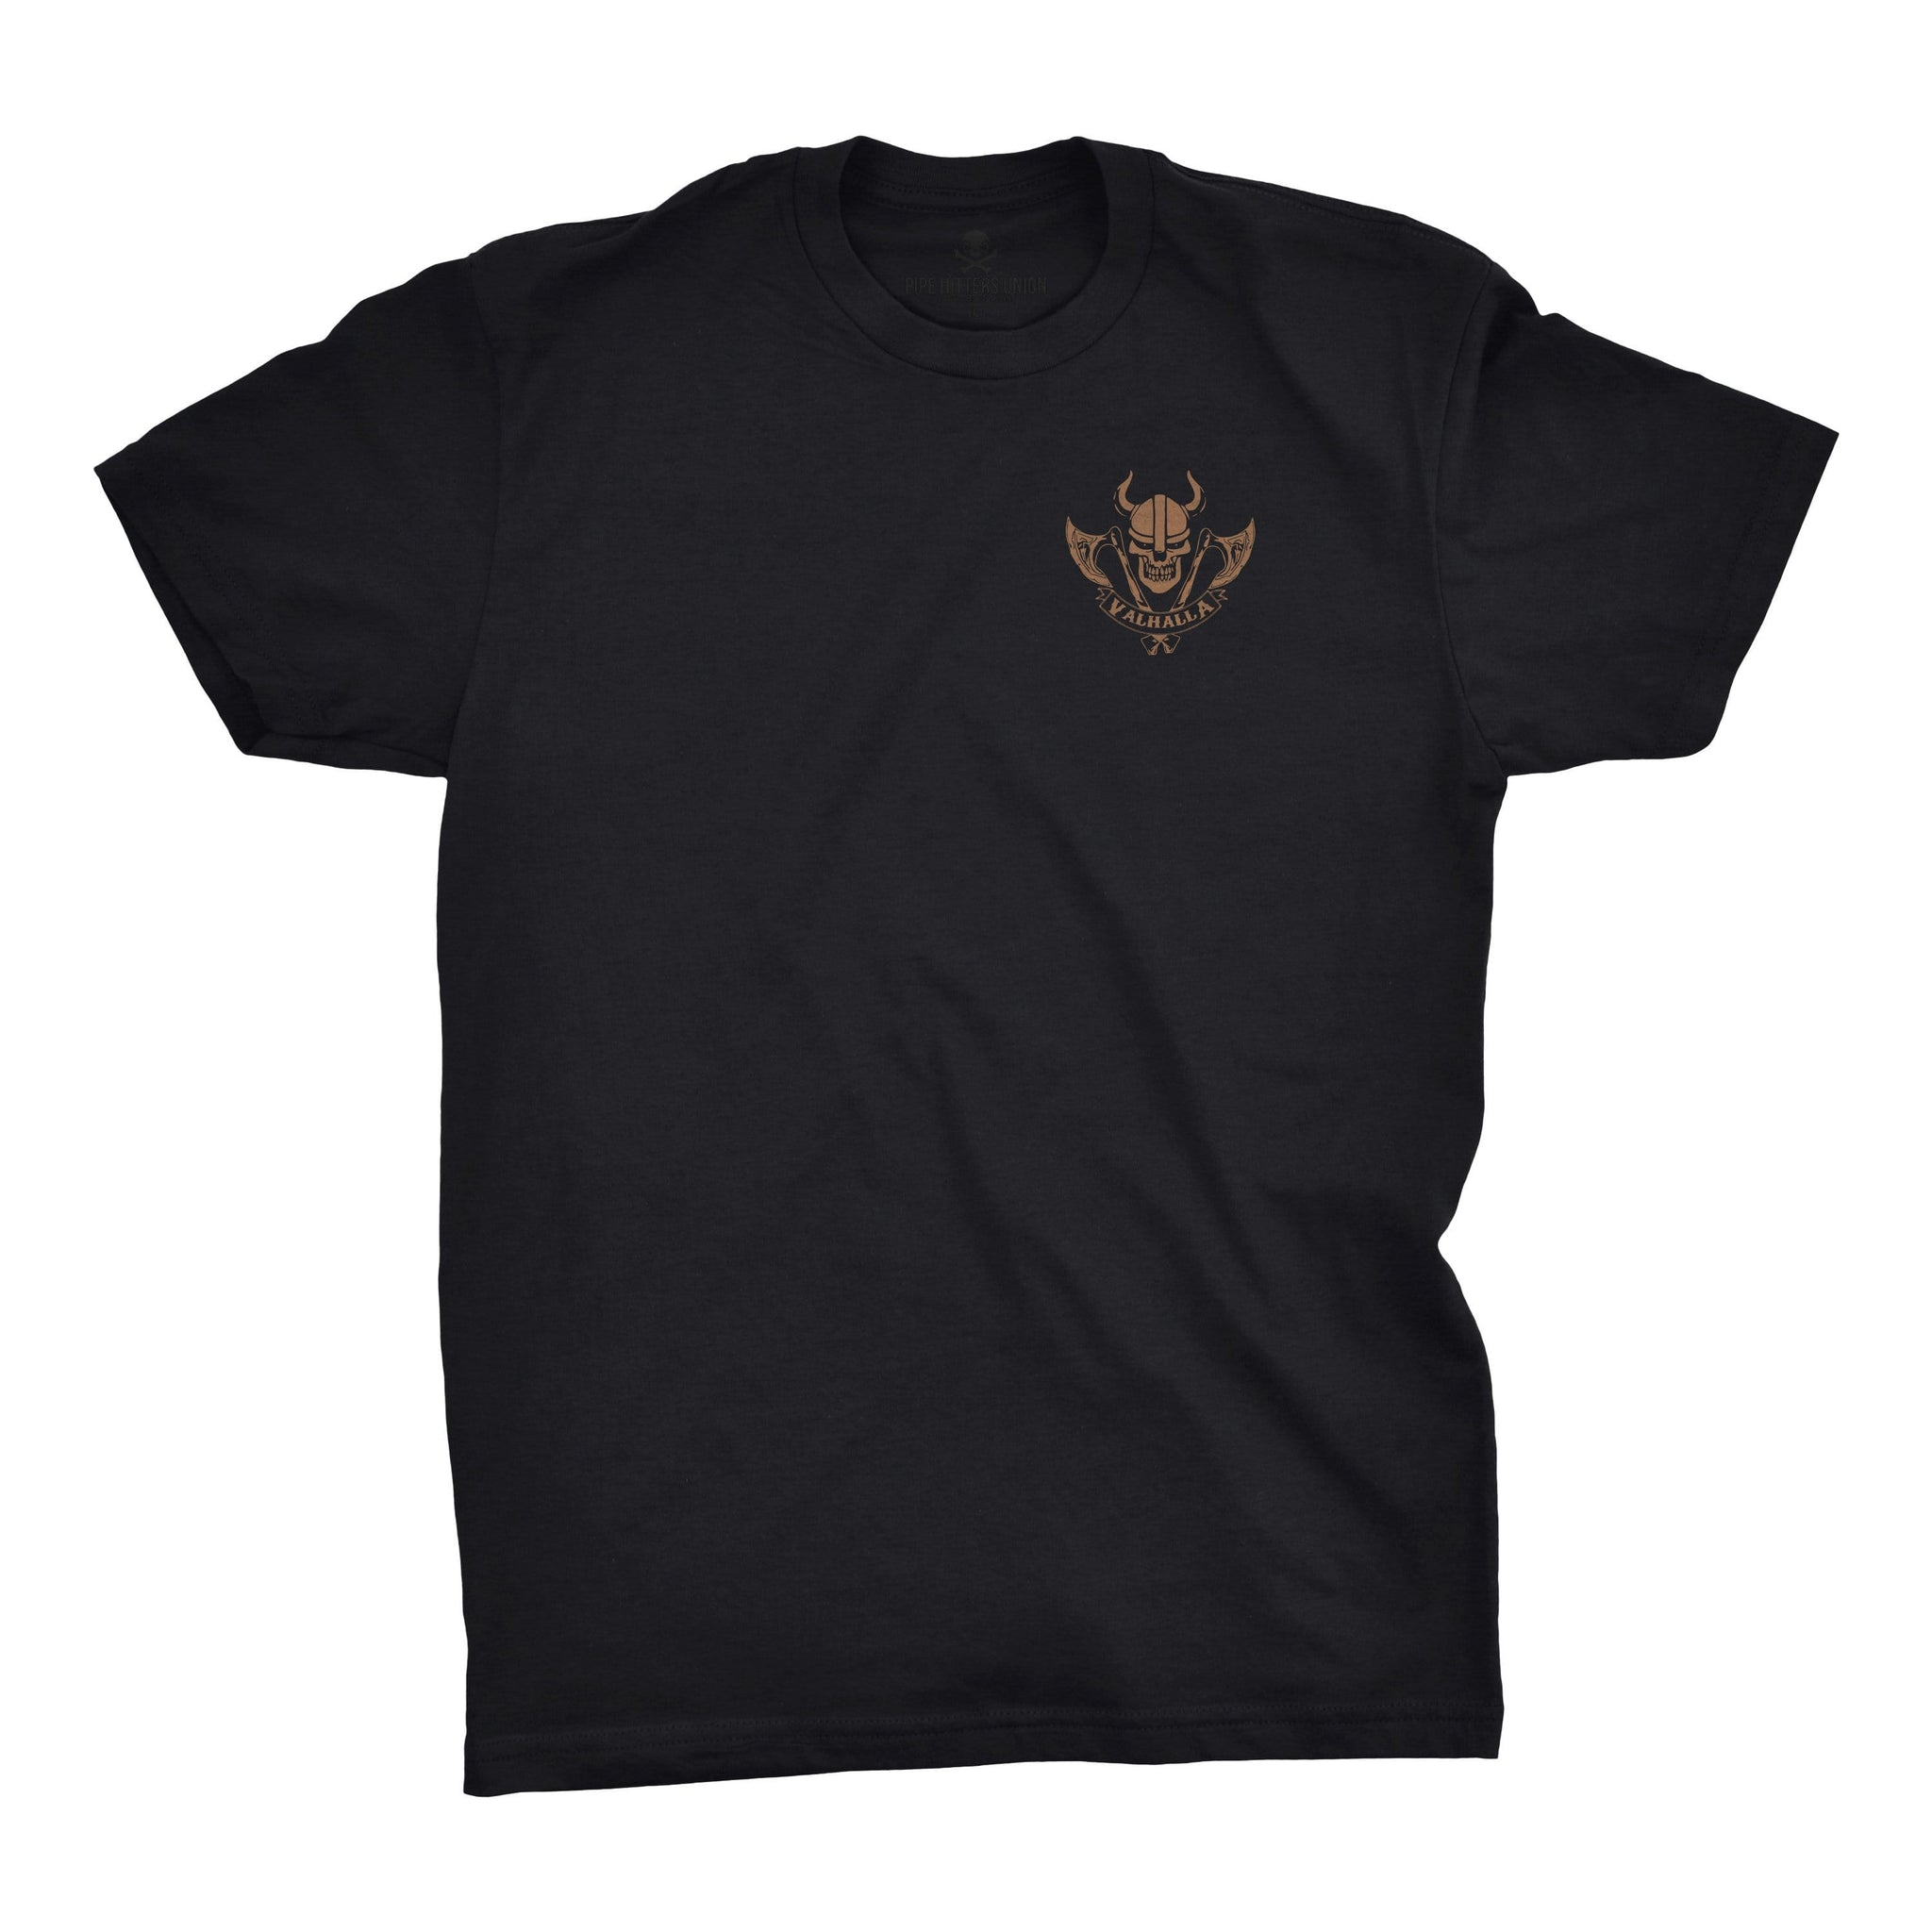 PHUMC Valhalla Chapter Tee - Black - T-Shirts - Pipe Hitters Union